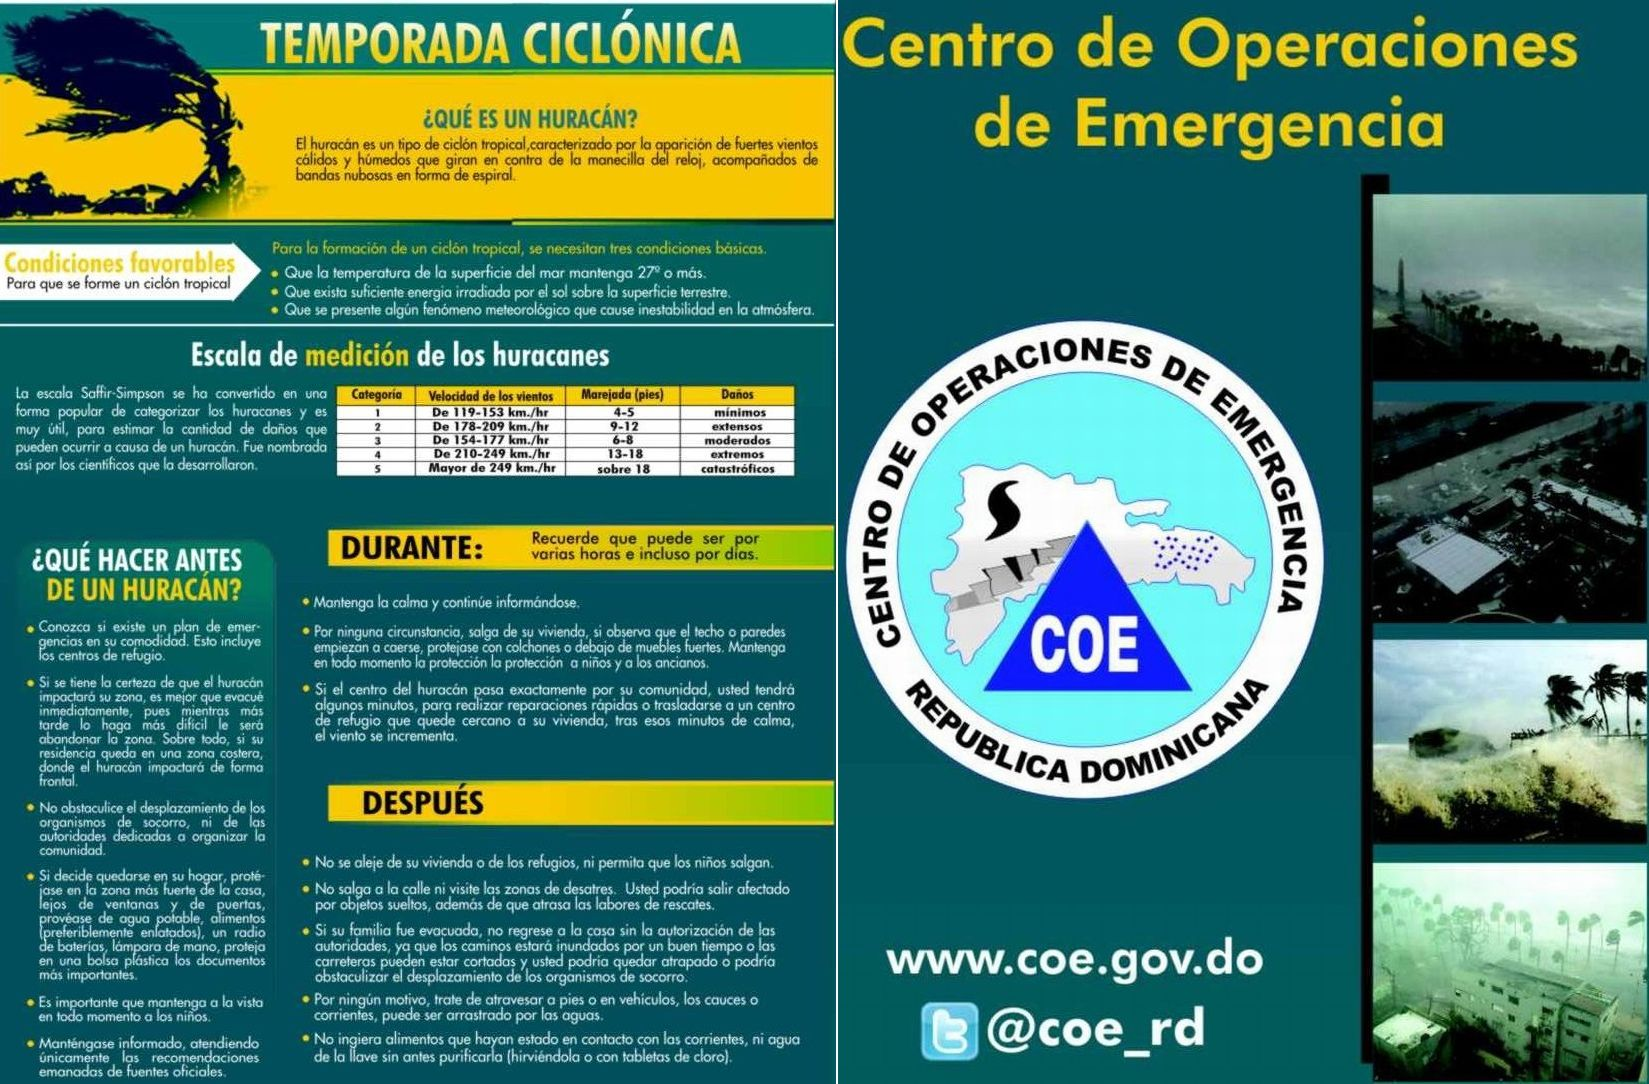 Pamphlet put out by the Emergency Center in DR.